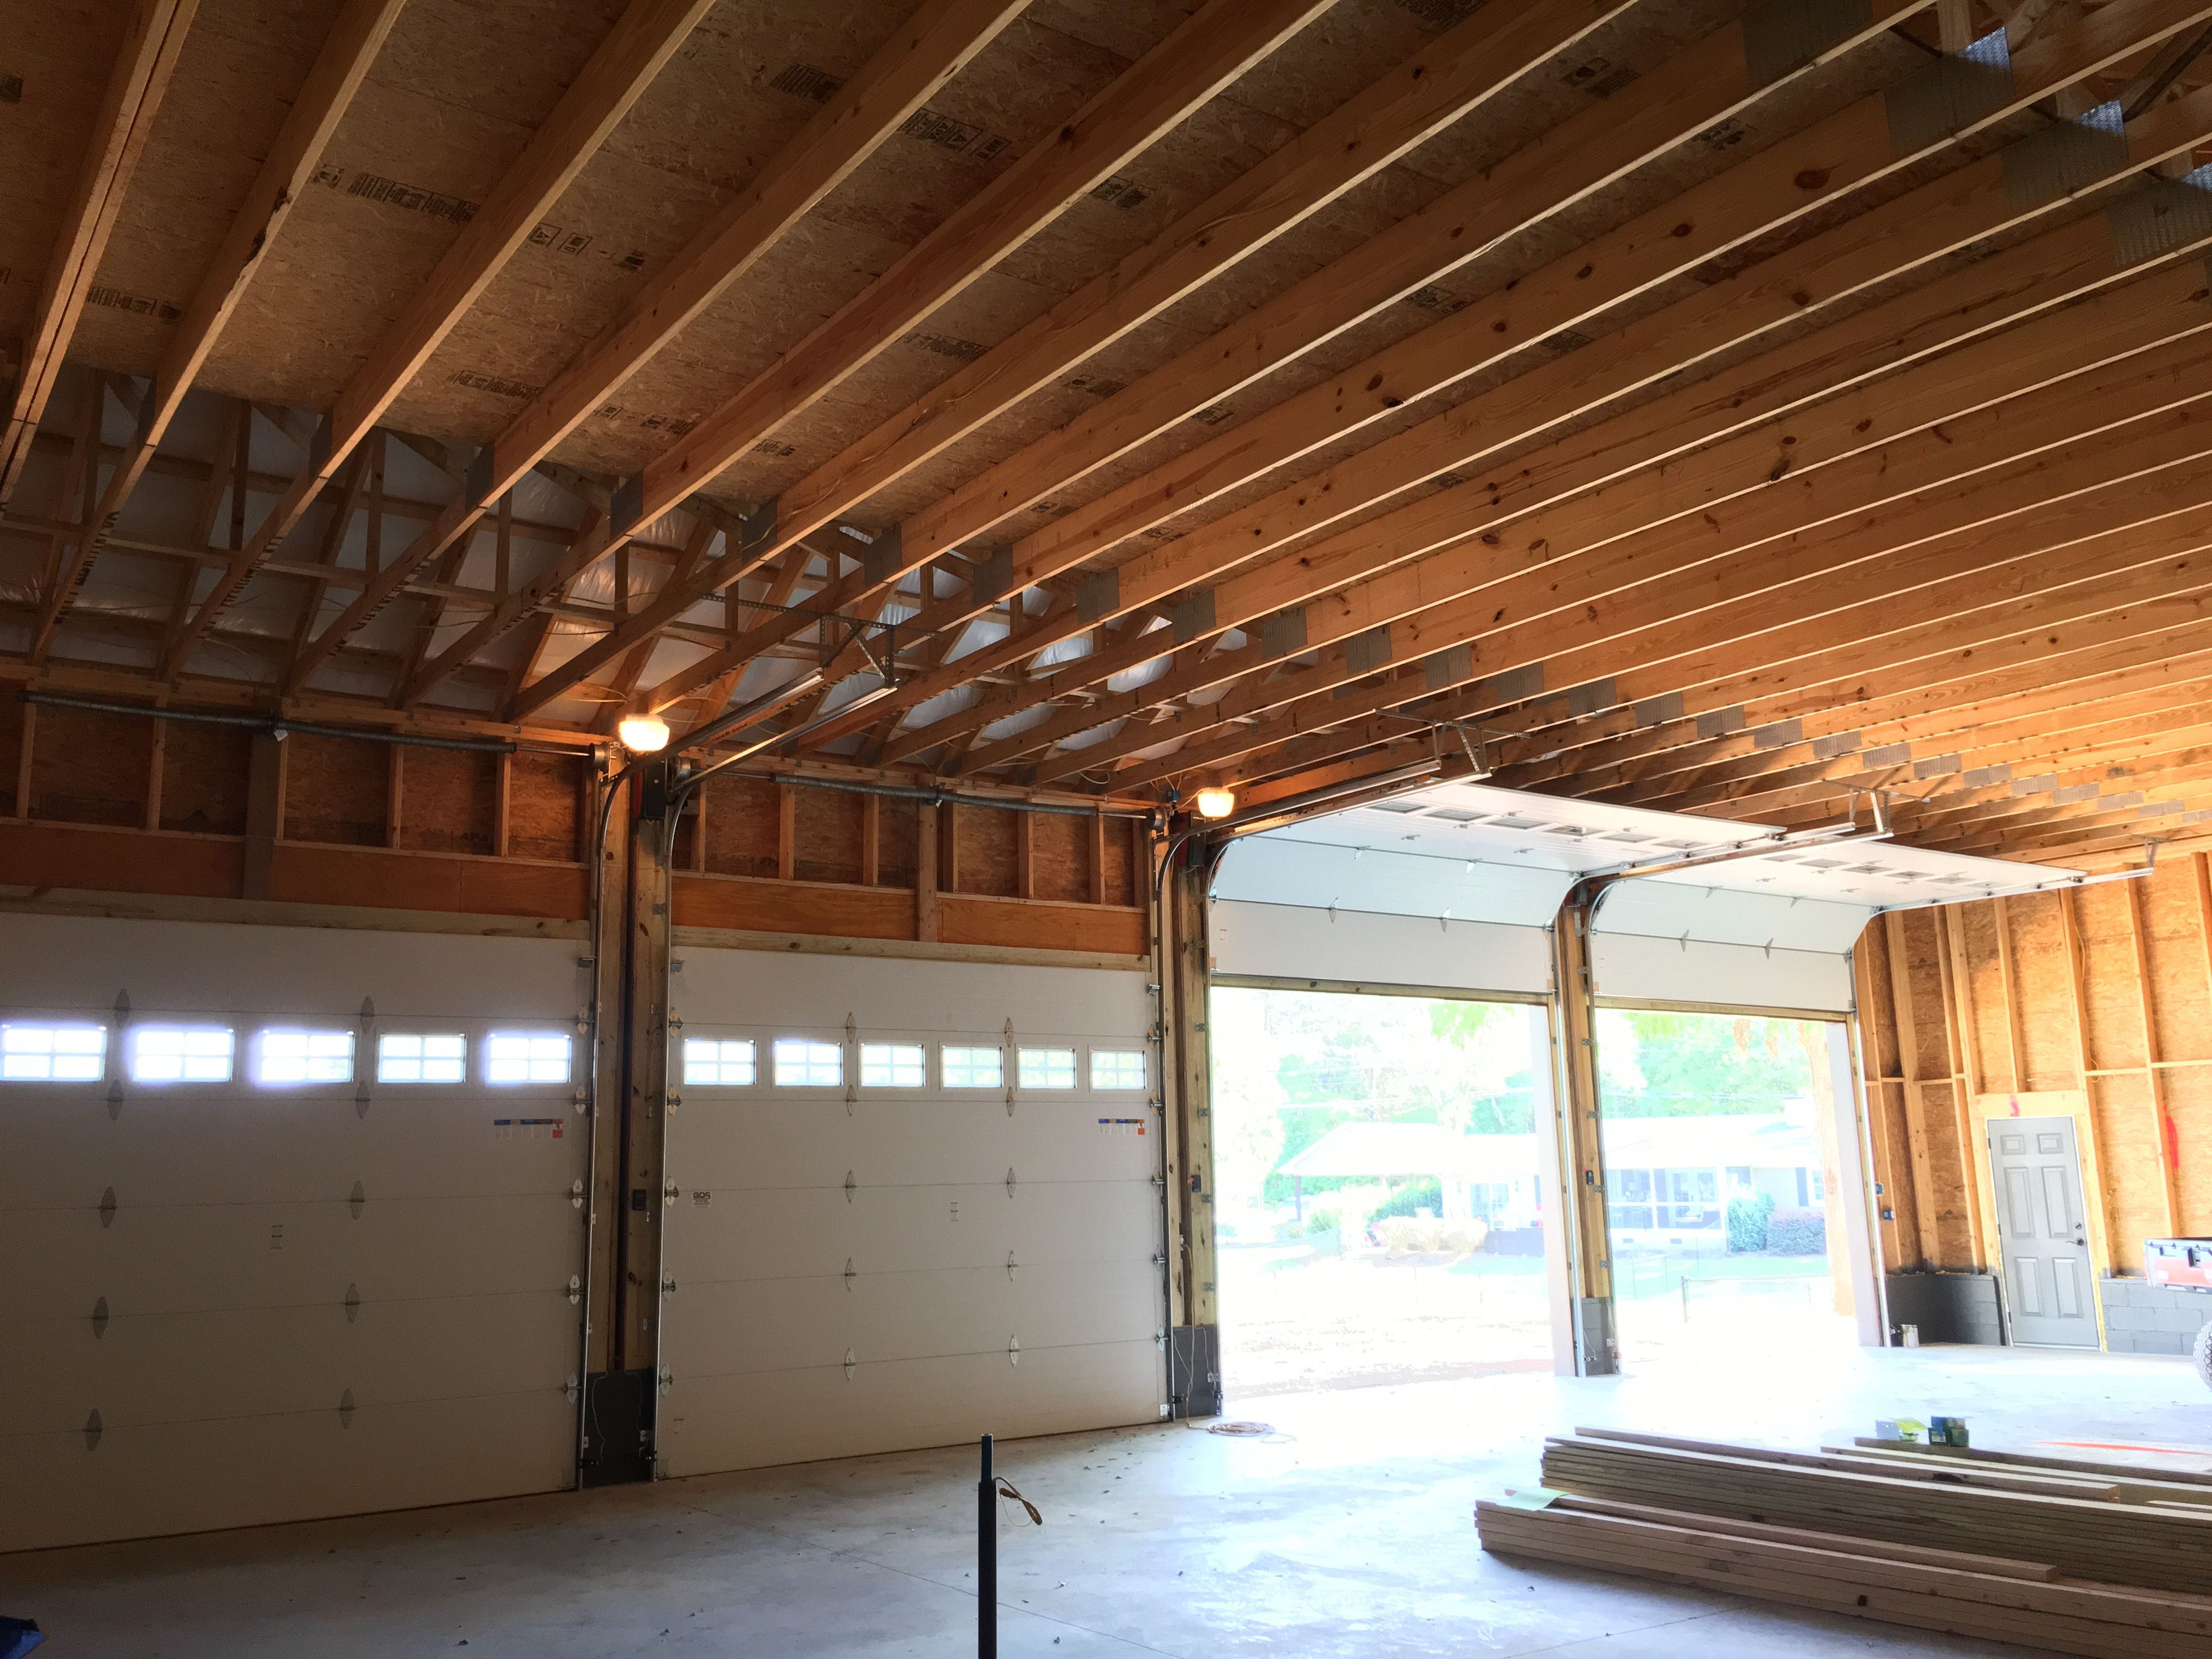 Clopay Garage Doors 12 Wide X 10 Tall With The Highlift Track And The Wall Mount Liftmaster Jackshaft Operator This Gives Maximum Liftmaster Home Interior